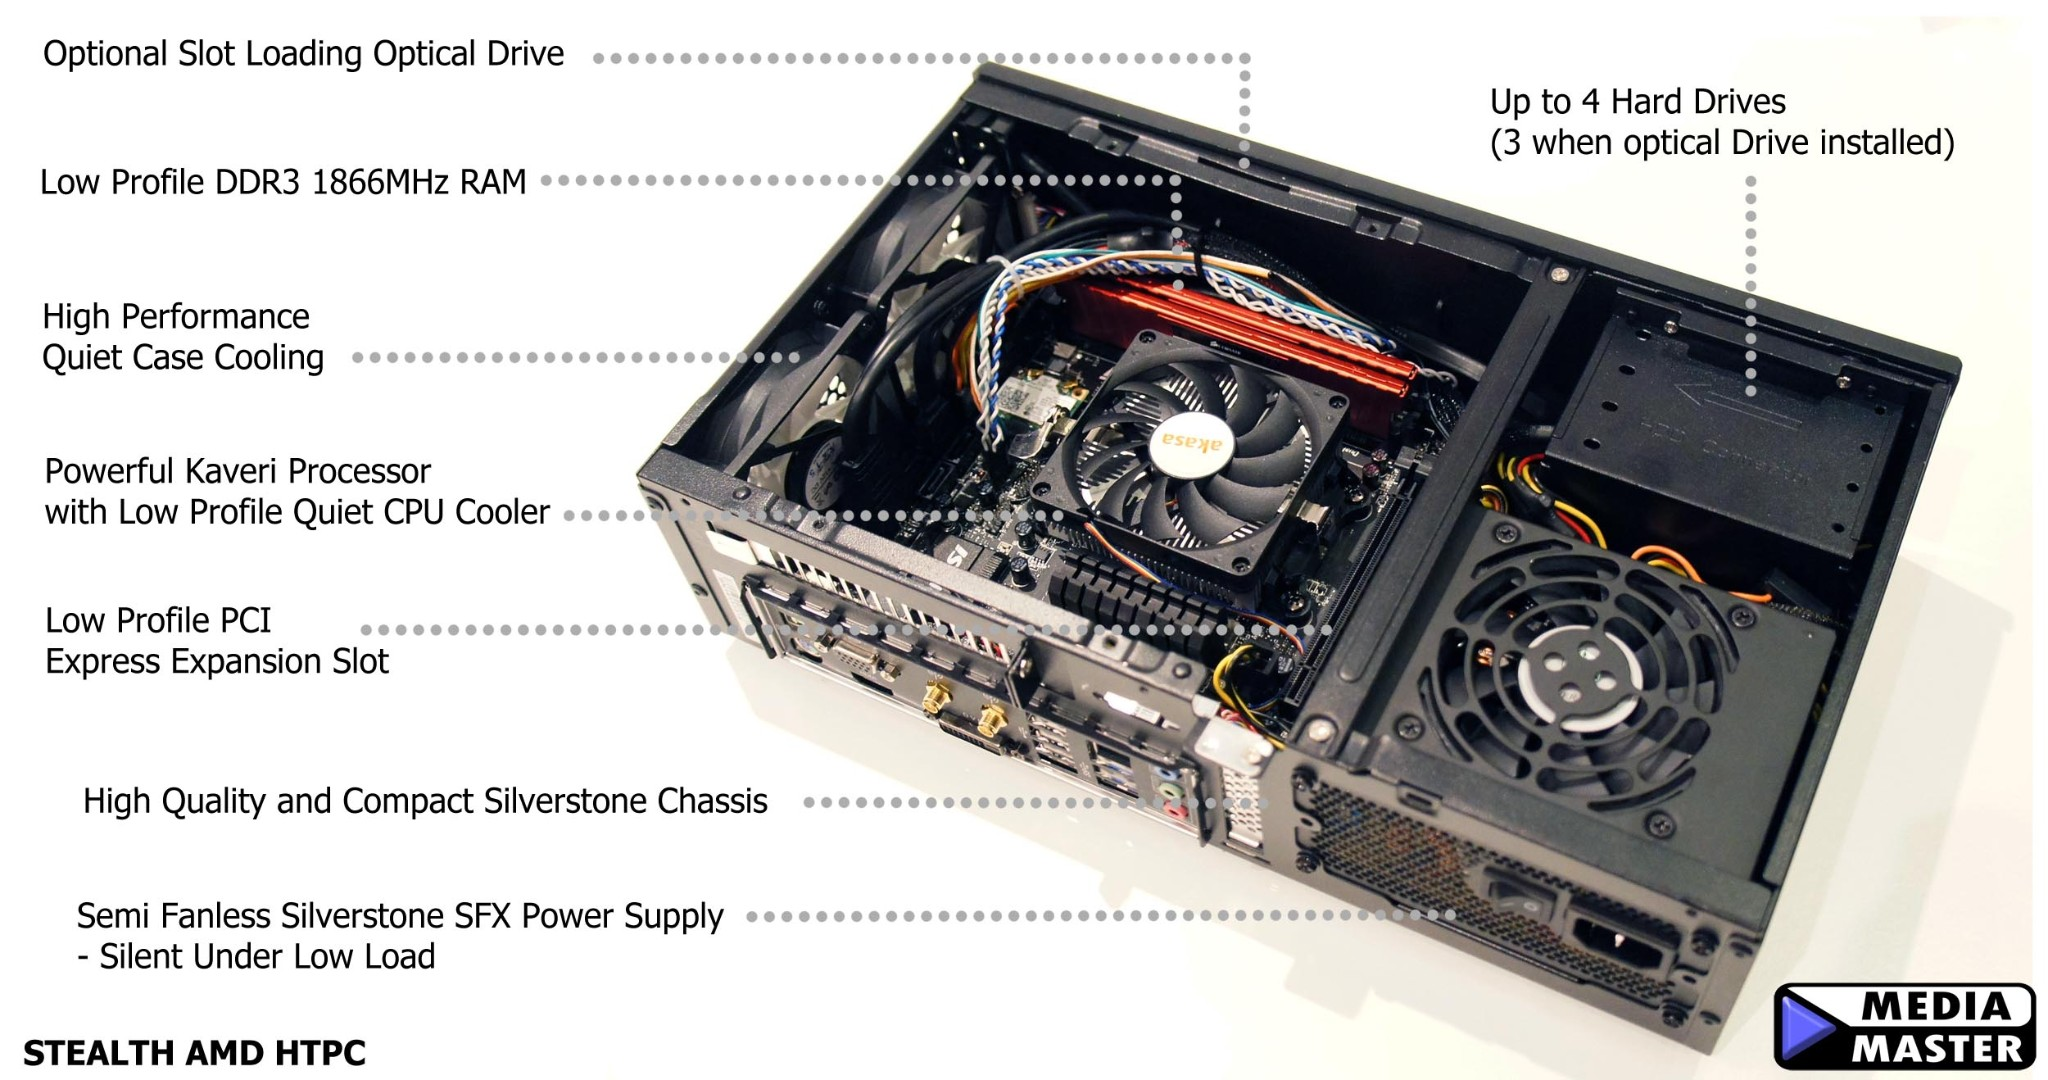 Internal layout of small HTPC, featuring powerful quad core processor and silent cooling - Media Master HTPC